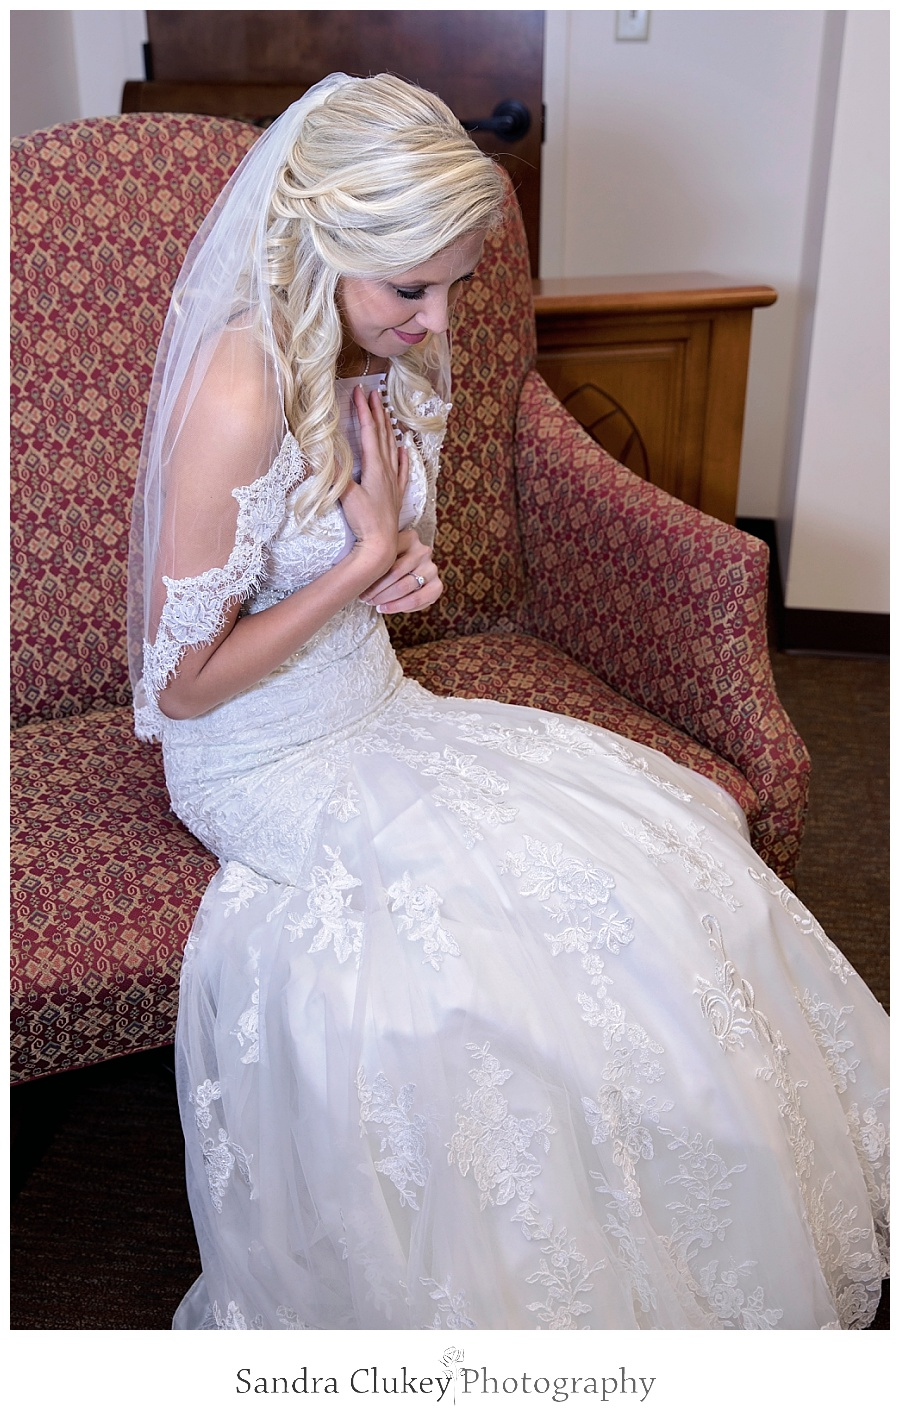 Bride reacts after reading letter from groom